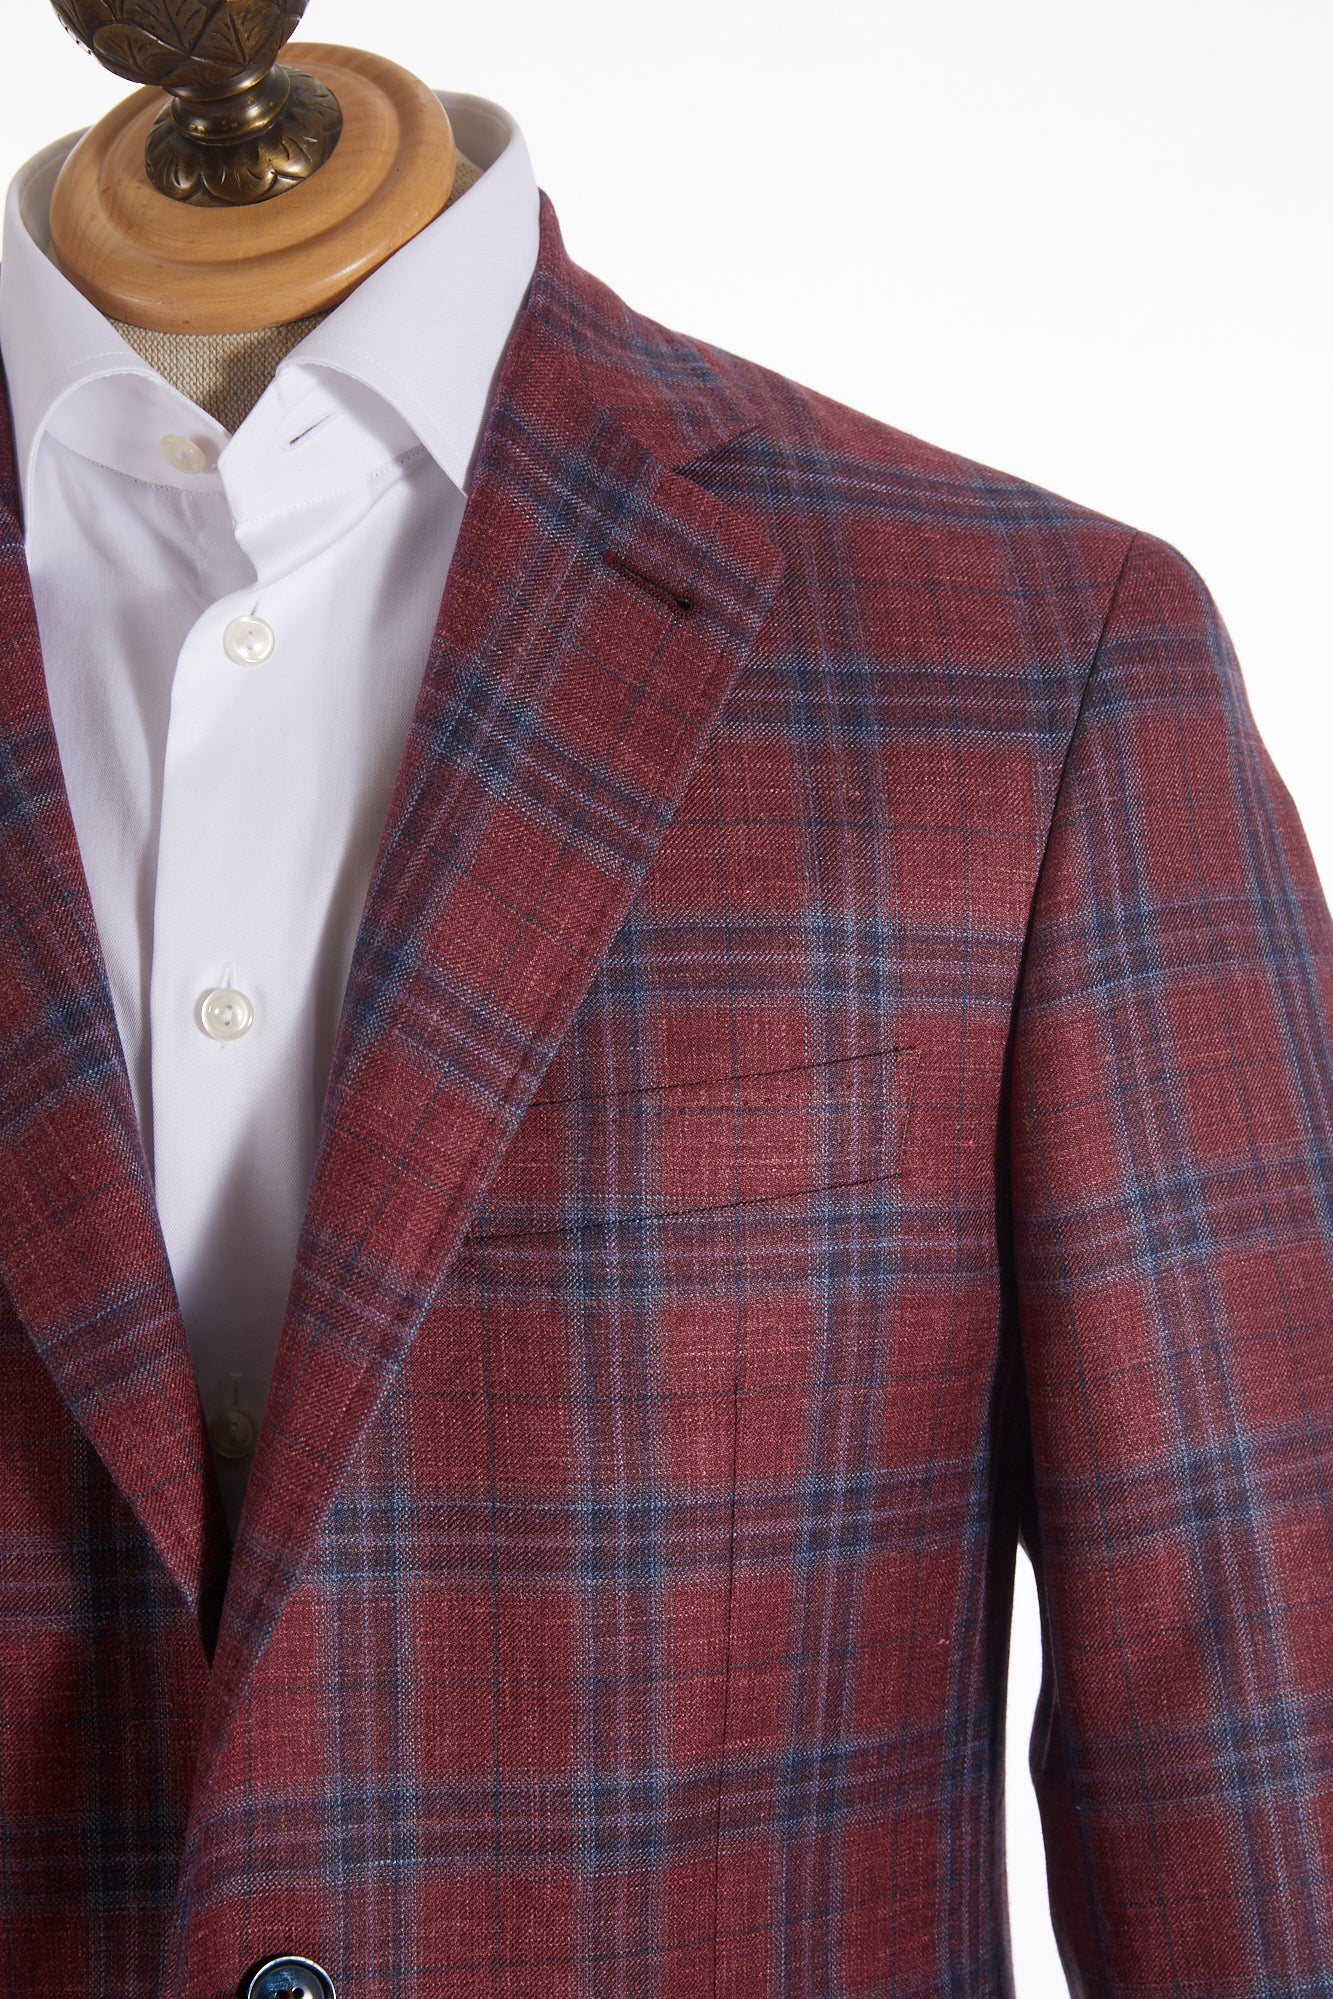 CANALI LALONDE's RED GLENCHECK SILK LINEN SPORT JACKET